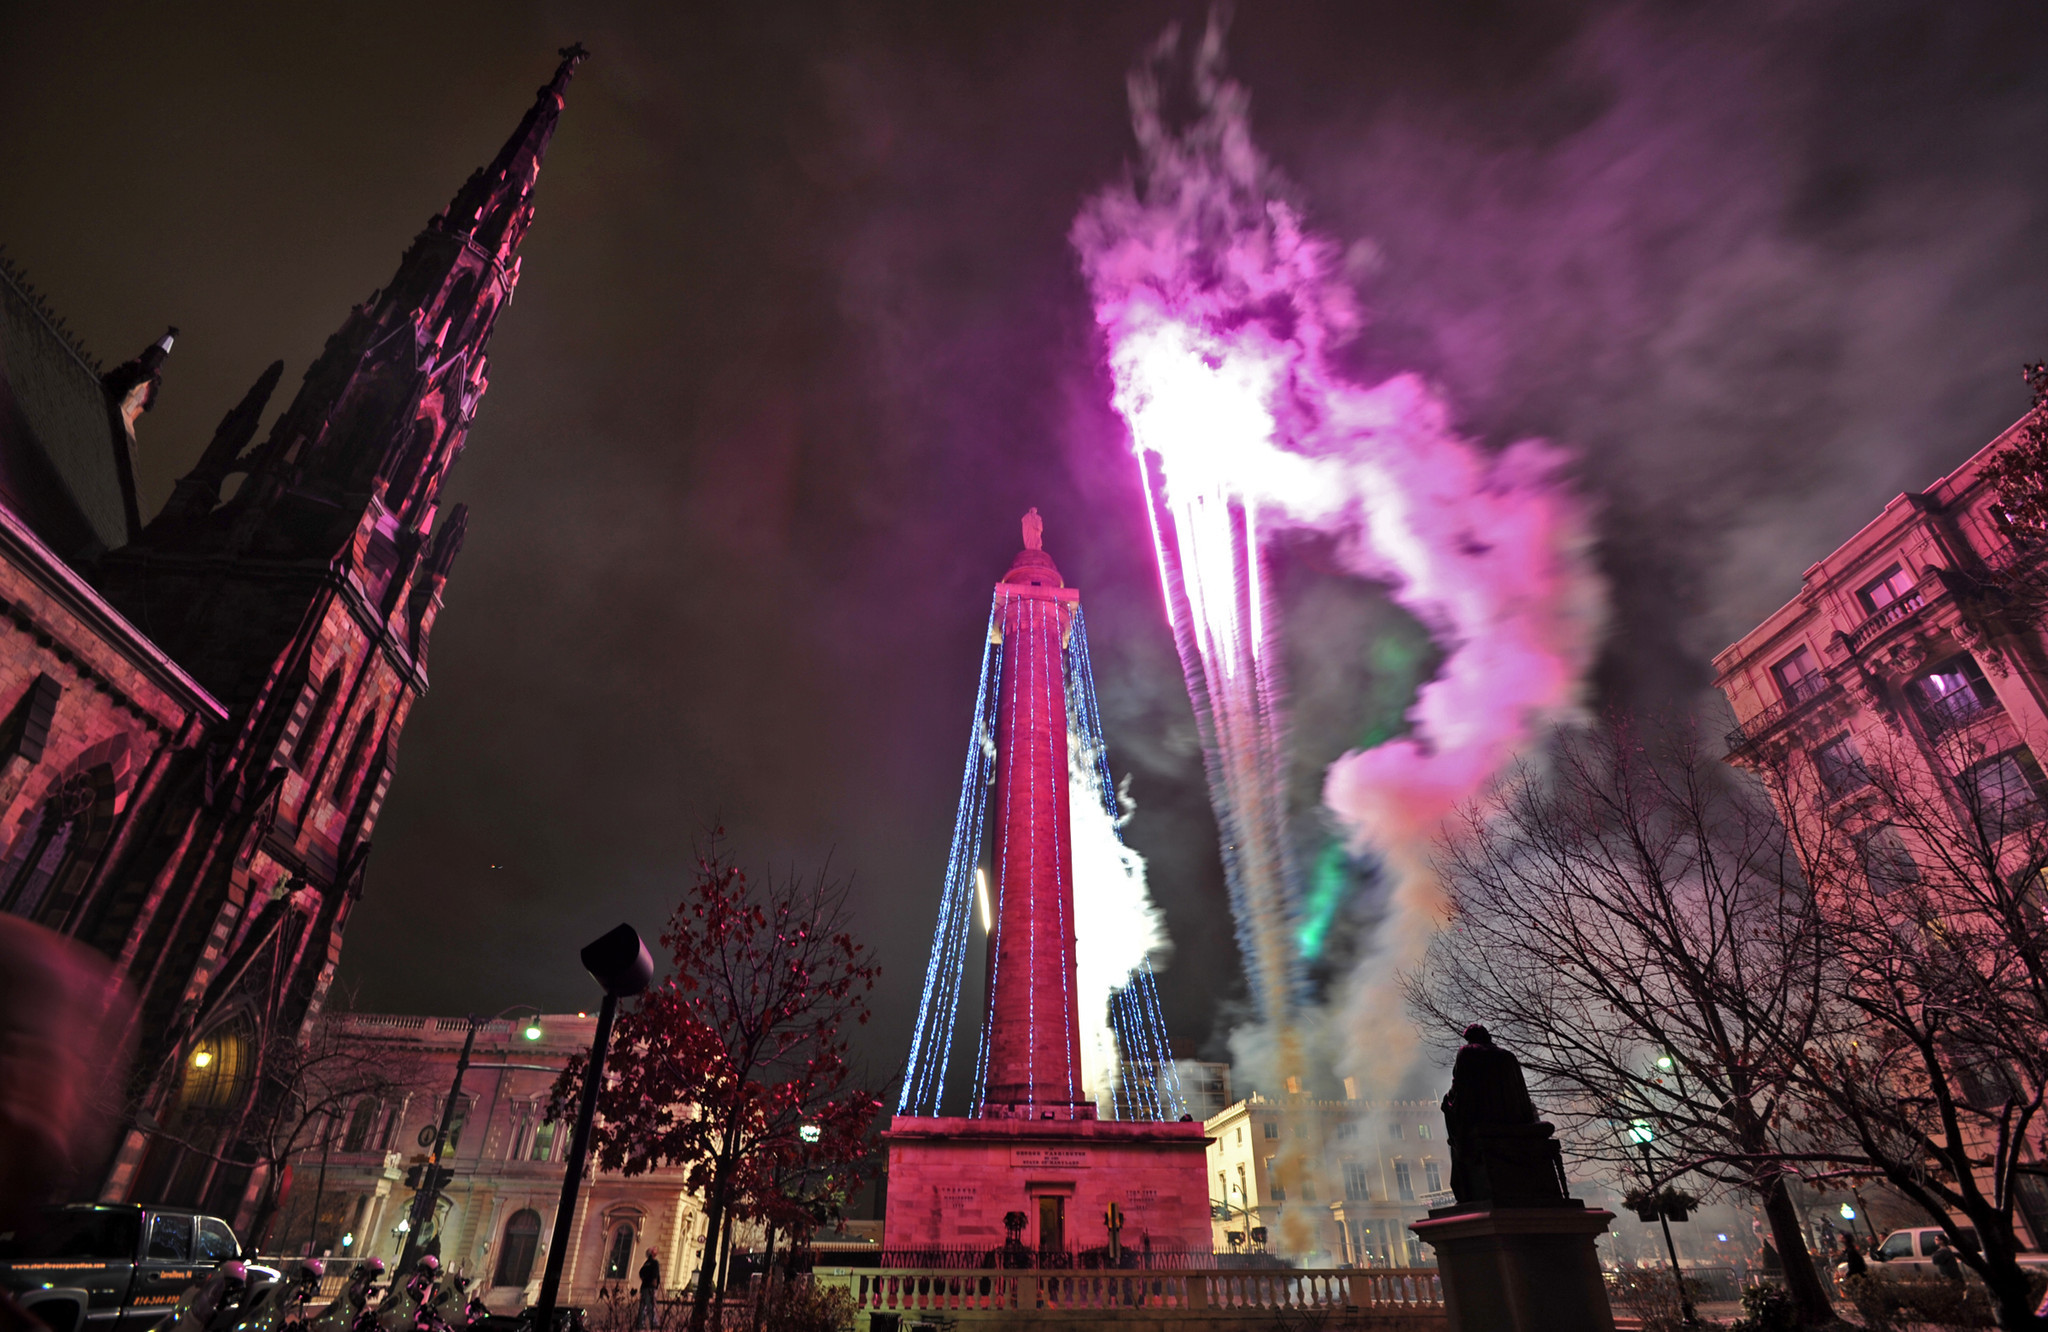 Pictures: Holiday lights from around the globe - 2013 Washington Monument lighting